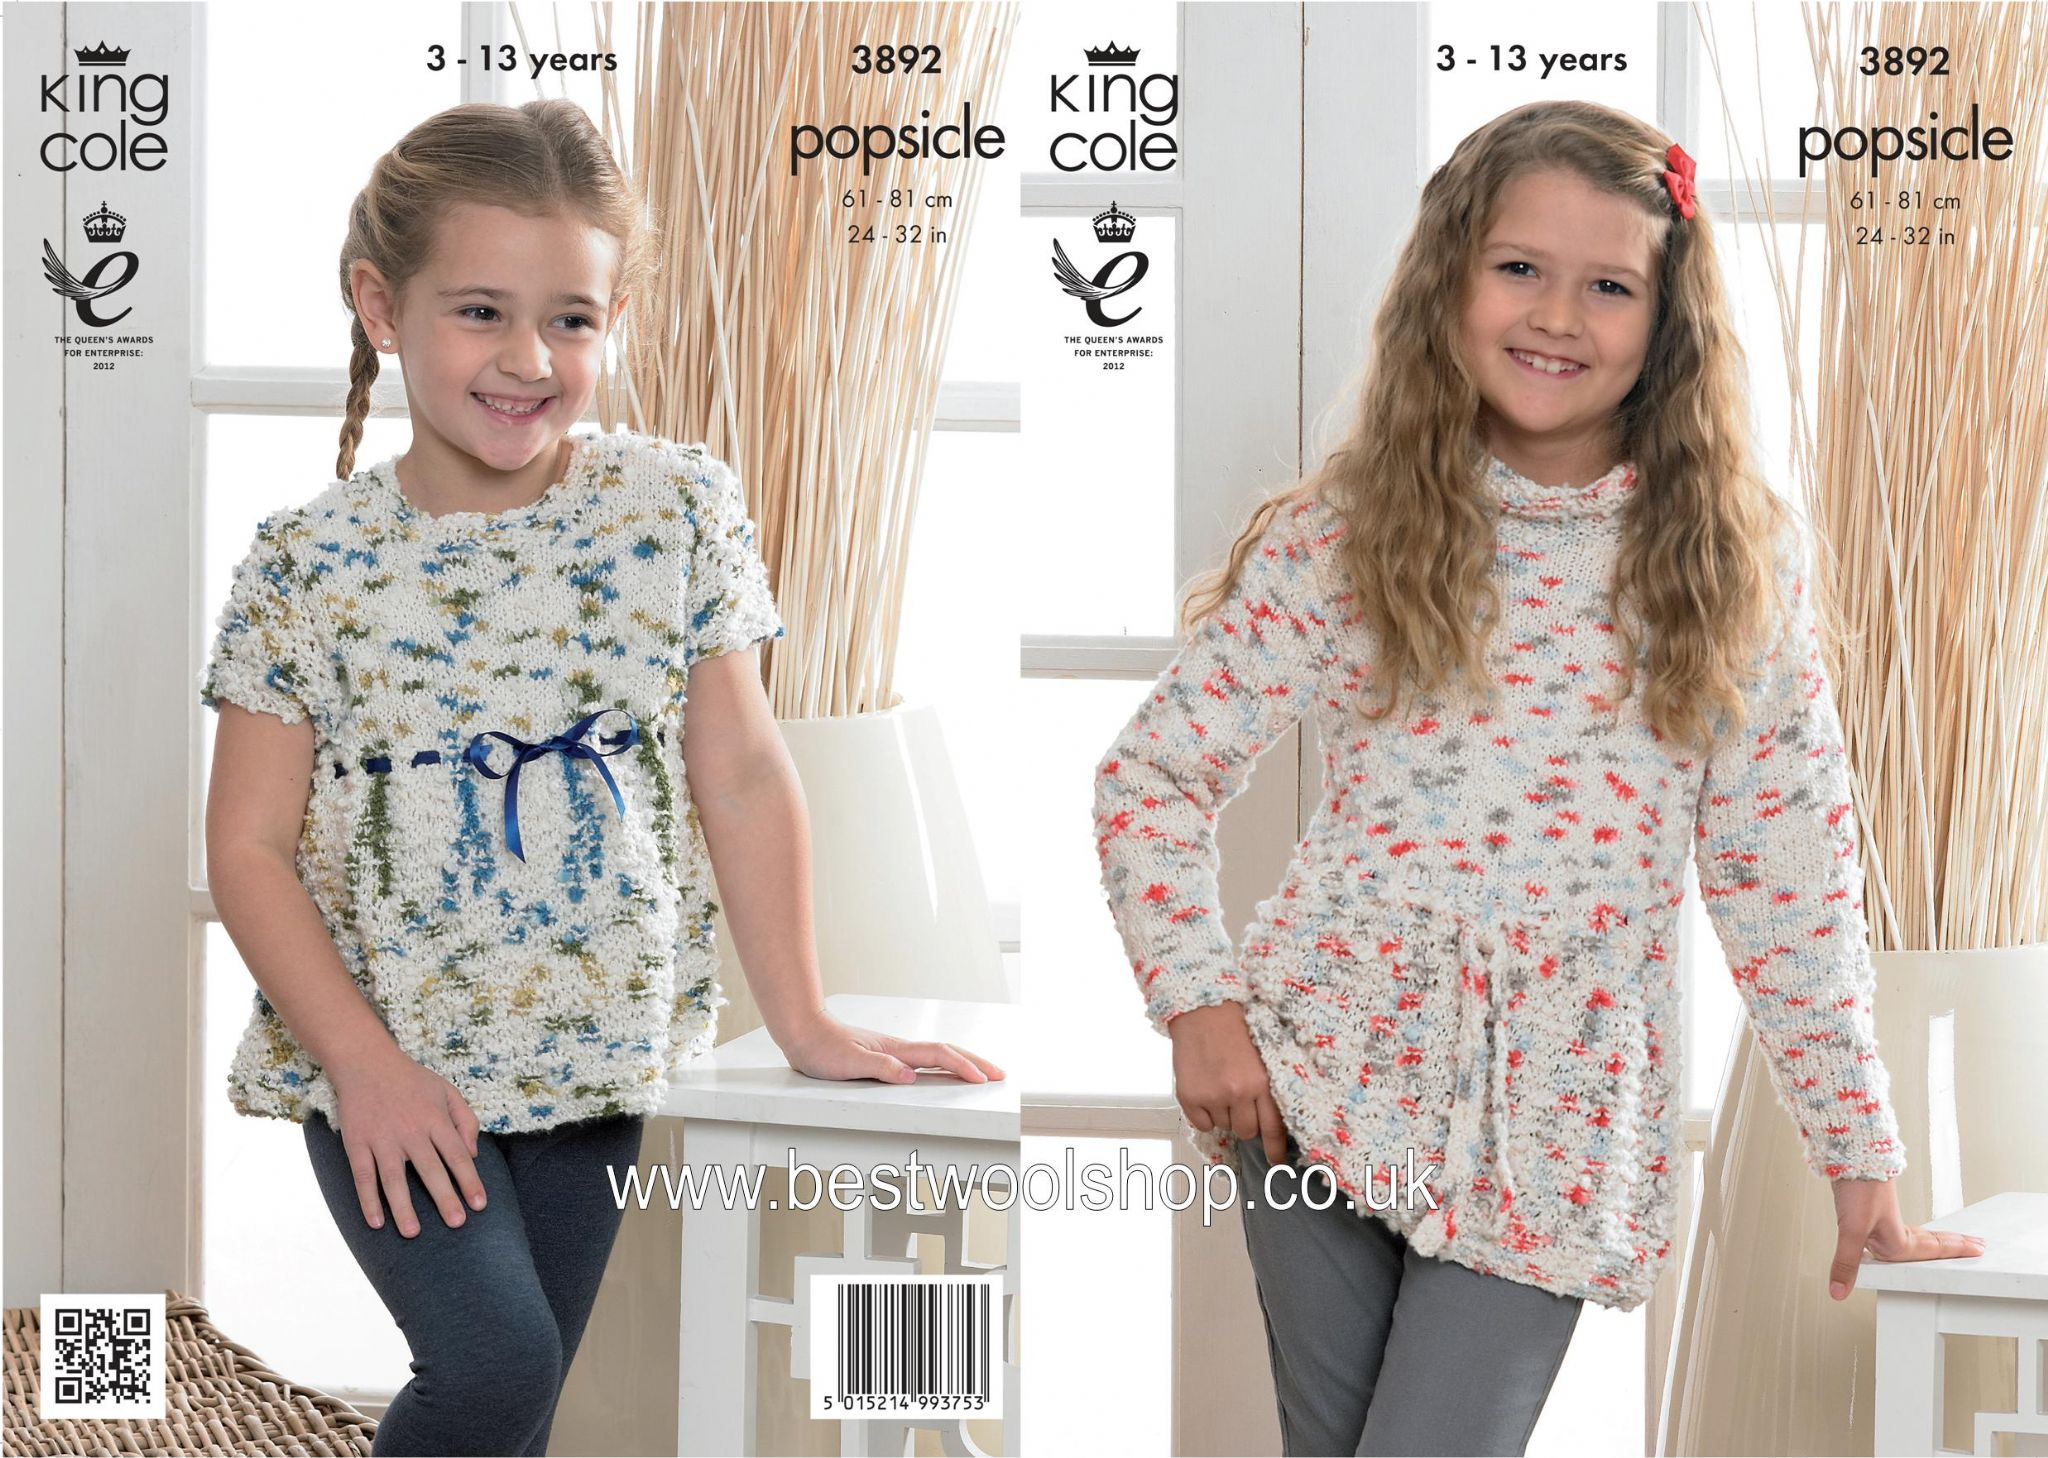 3892 king cole popsicle aran tunic sweater top knitting 3892 king cole popsicle aran tunic sweater top knitting pattern to fit 3 to 13 years bankloansurffo Choice Image